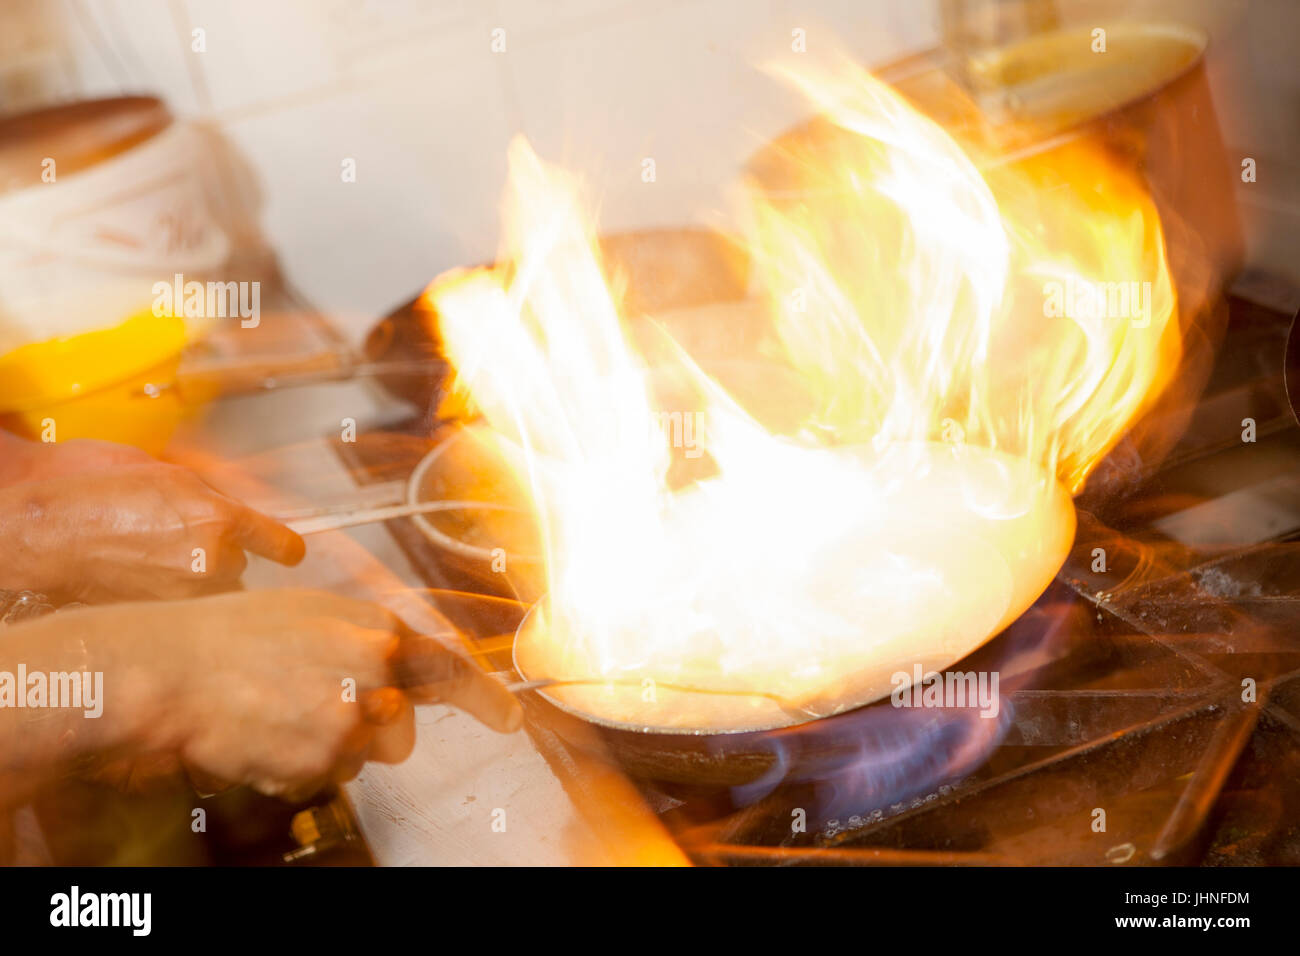 Staff prepare, cook and serve a range of  English and Bengali meals at Shazanz Kebab House in Lozells, Birmingham, - Stock Image